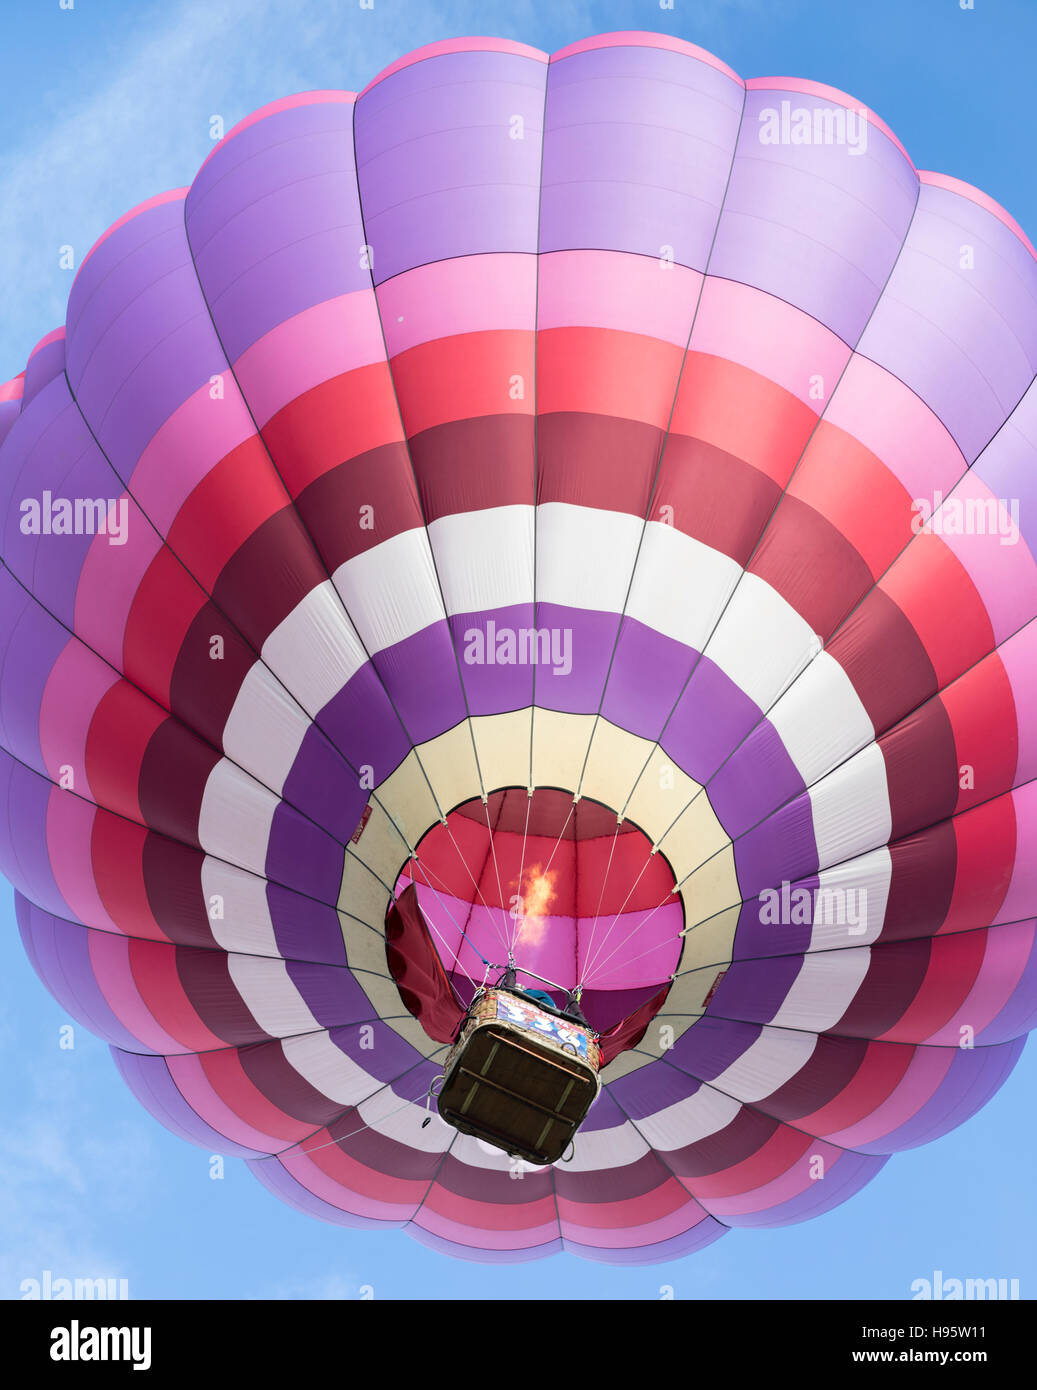 Hot air balloon gas flame is visible as it rises during mass ascension at Albuquerque International Balloon Fiesta, New Mexico Stock Photo